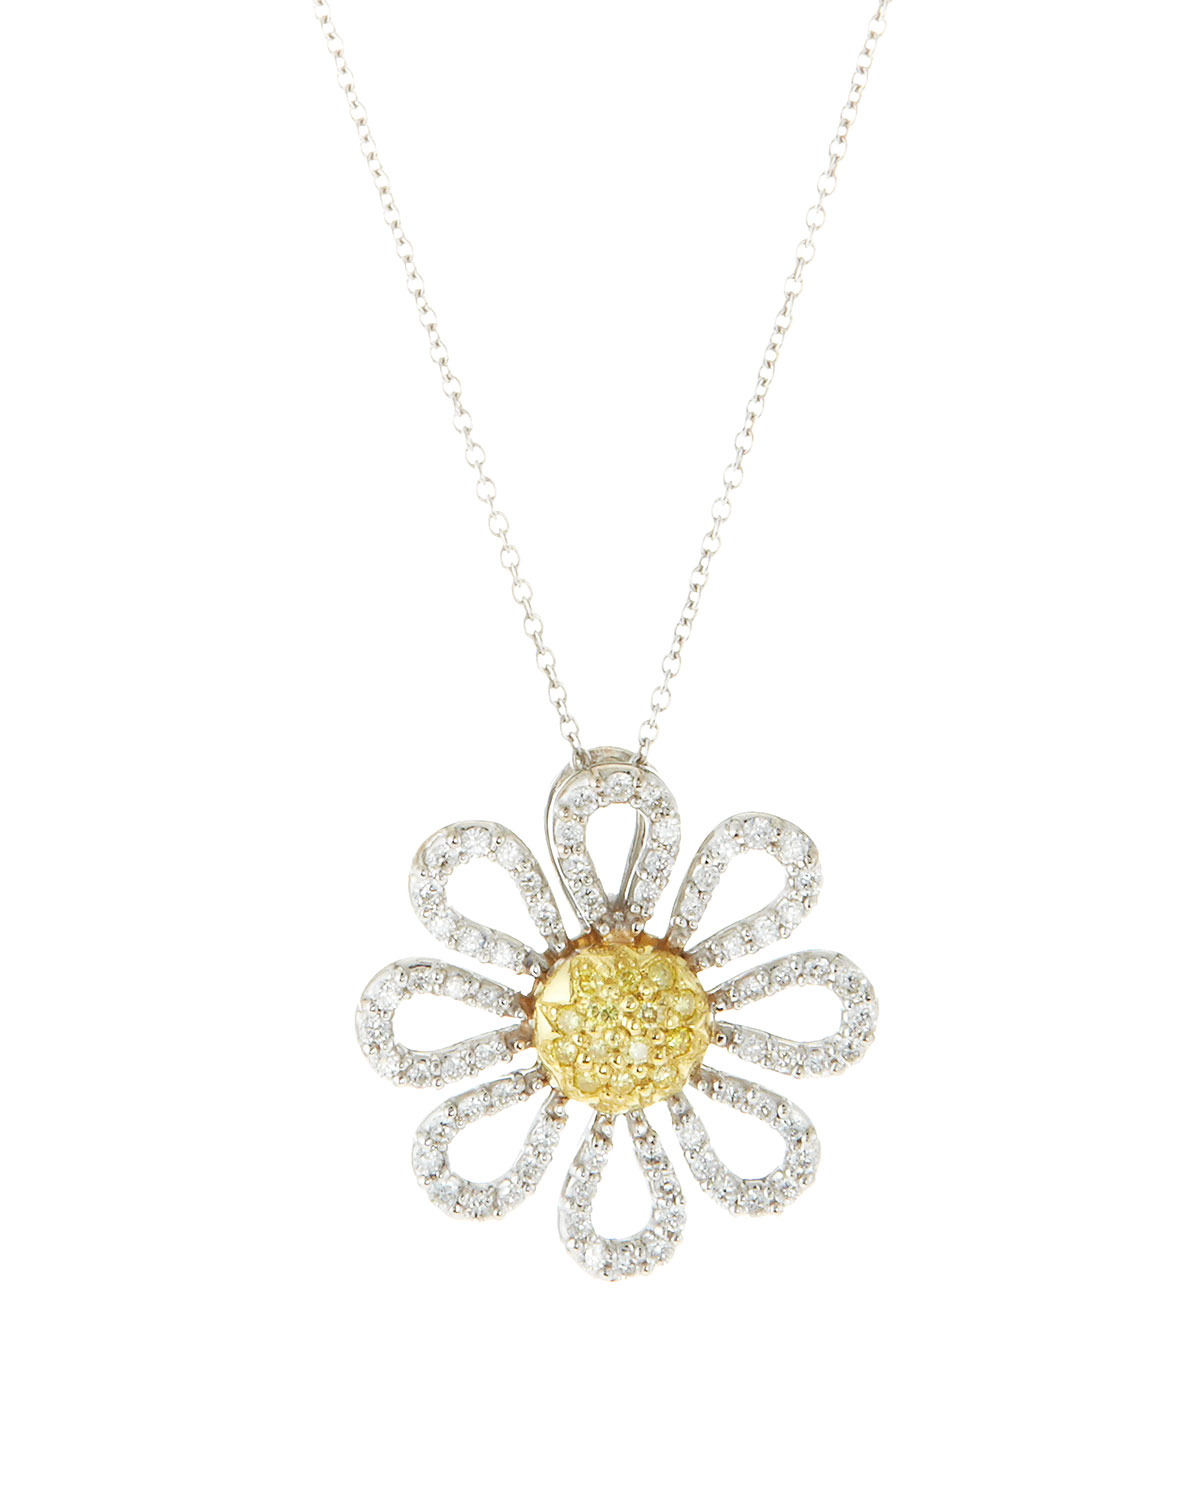 silver featuring pendant a daisy necklace katy jane product brass petal